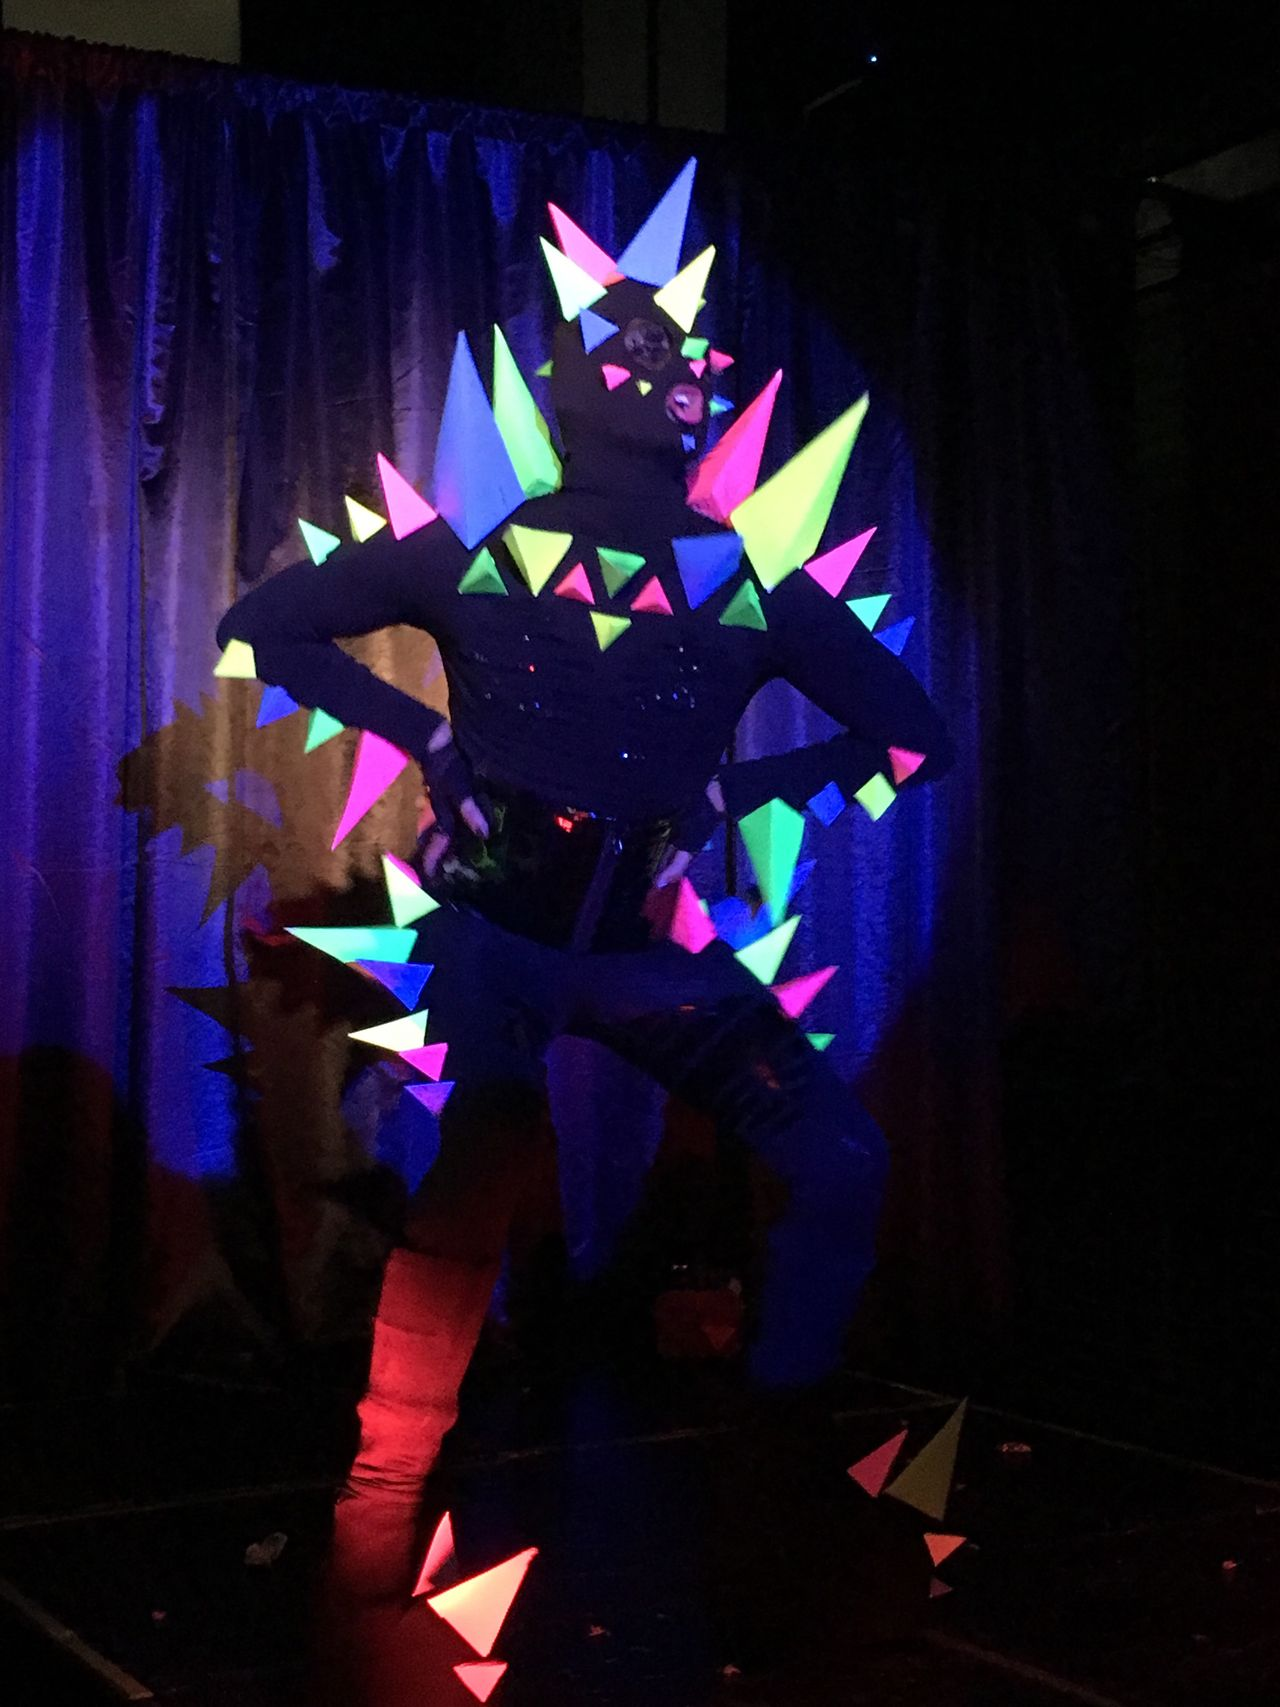 Indoors  Celebration Illuminated Curtain Multi Colored No People Drag Queen Club Kid Costume Dinosaur Gay Pride Gay Pride Cabaret Queer Club Bar Party Lip Sync Lgbt Gay Bar Performance Night Close-up